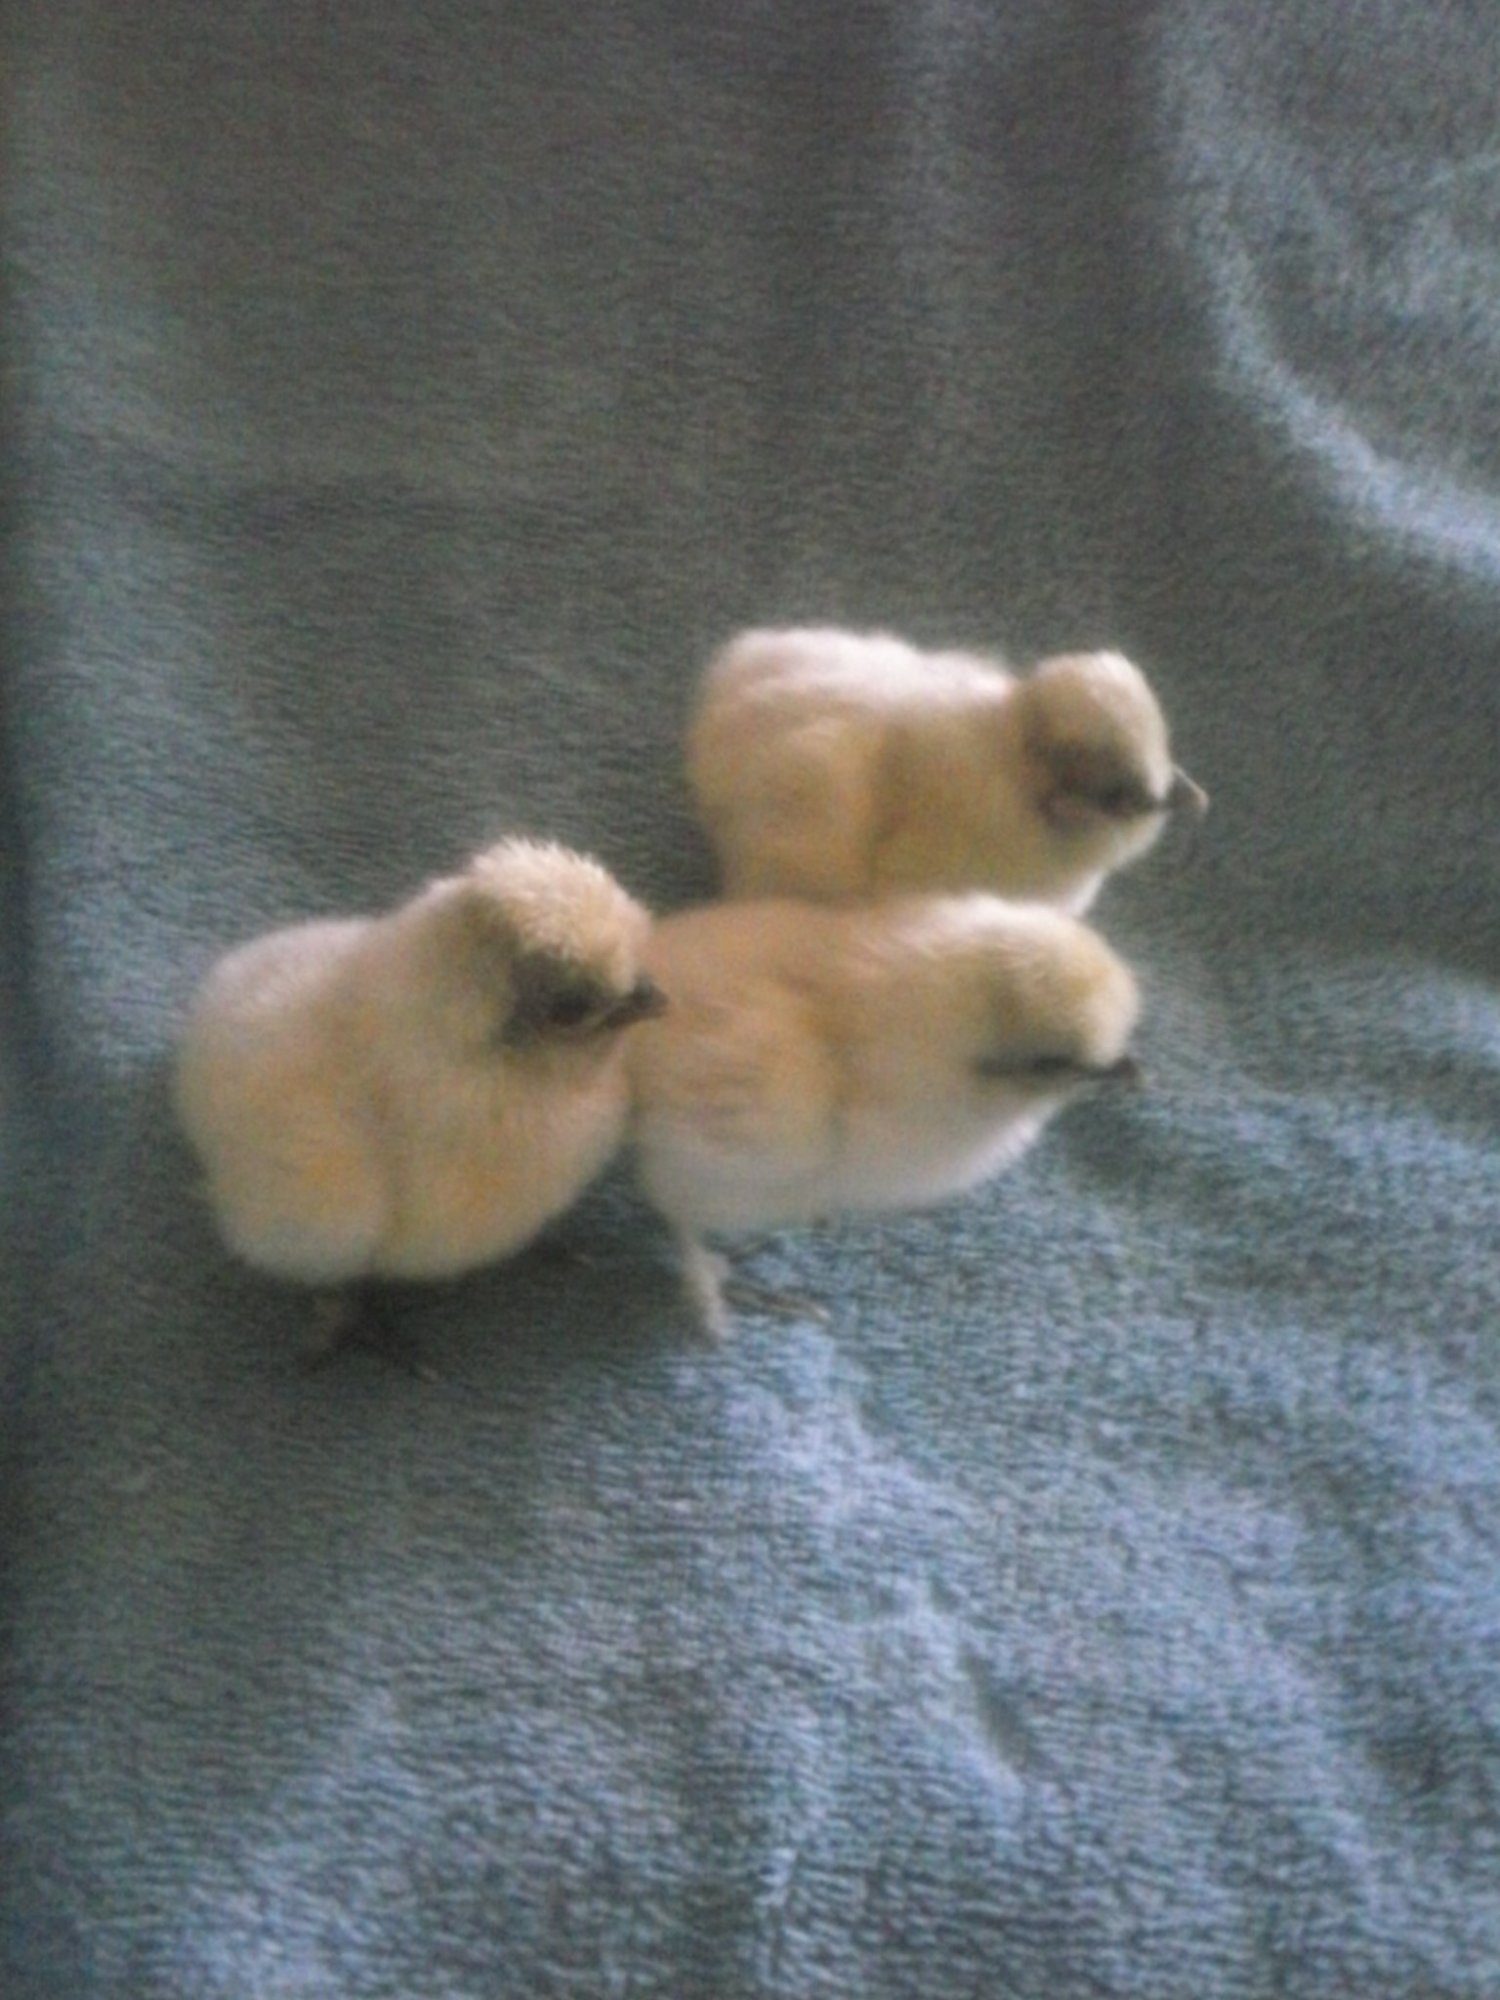 SilkieSensation's photos in Contest #4 Brinsea's Cutest Baby Fowl Photo Contest 5th Annual BYC Easter Hatch-a-long!